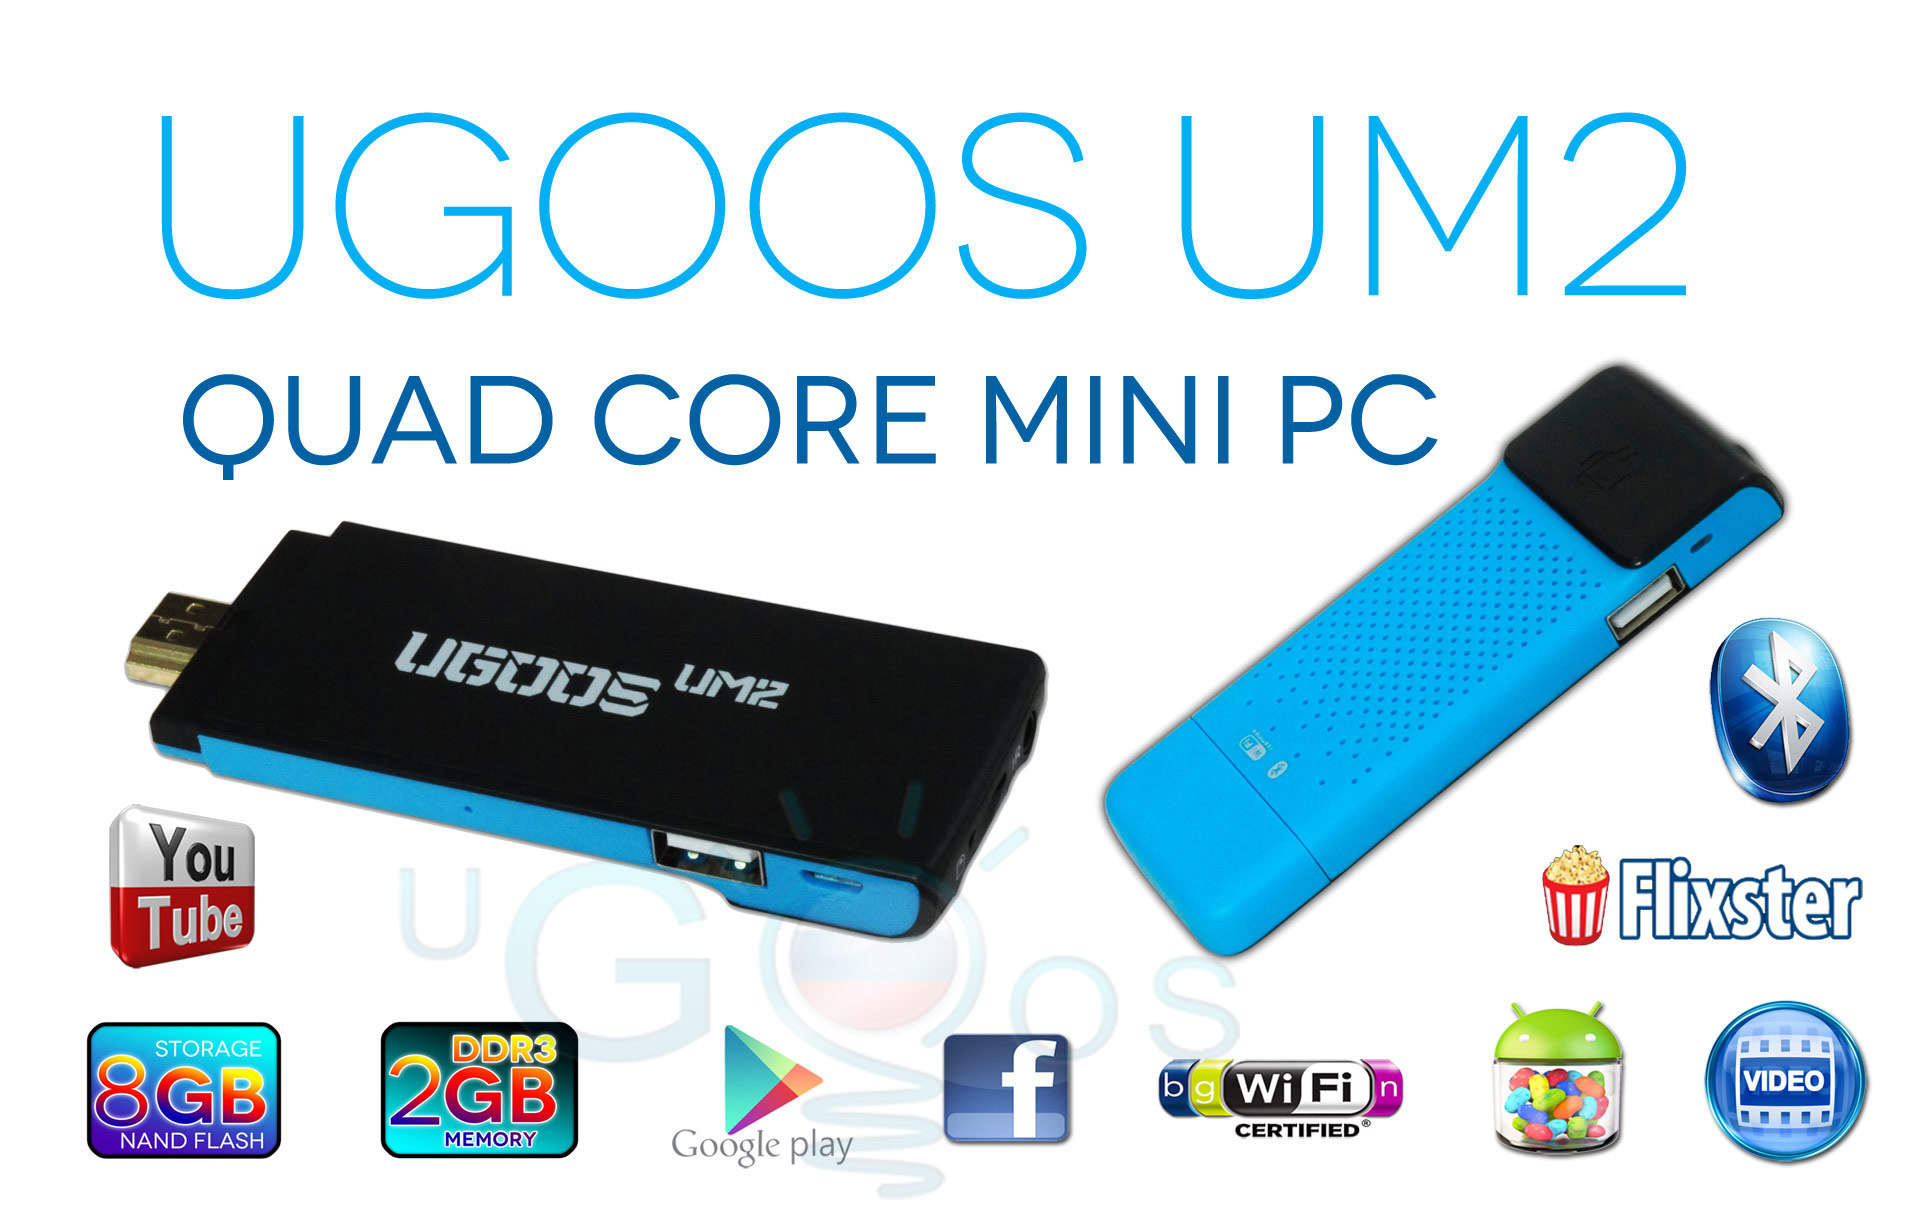 [Hot Item] Ugoos Um2 Quad Core Rk3188 Android 4 4 TV Dongle with HDMI,  Bluetooth, WiFi, 2GB RAM, 8GB ROM